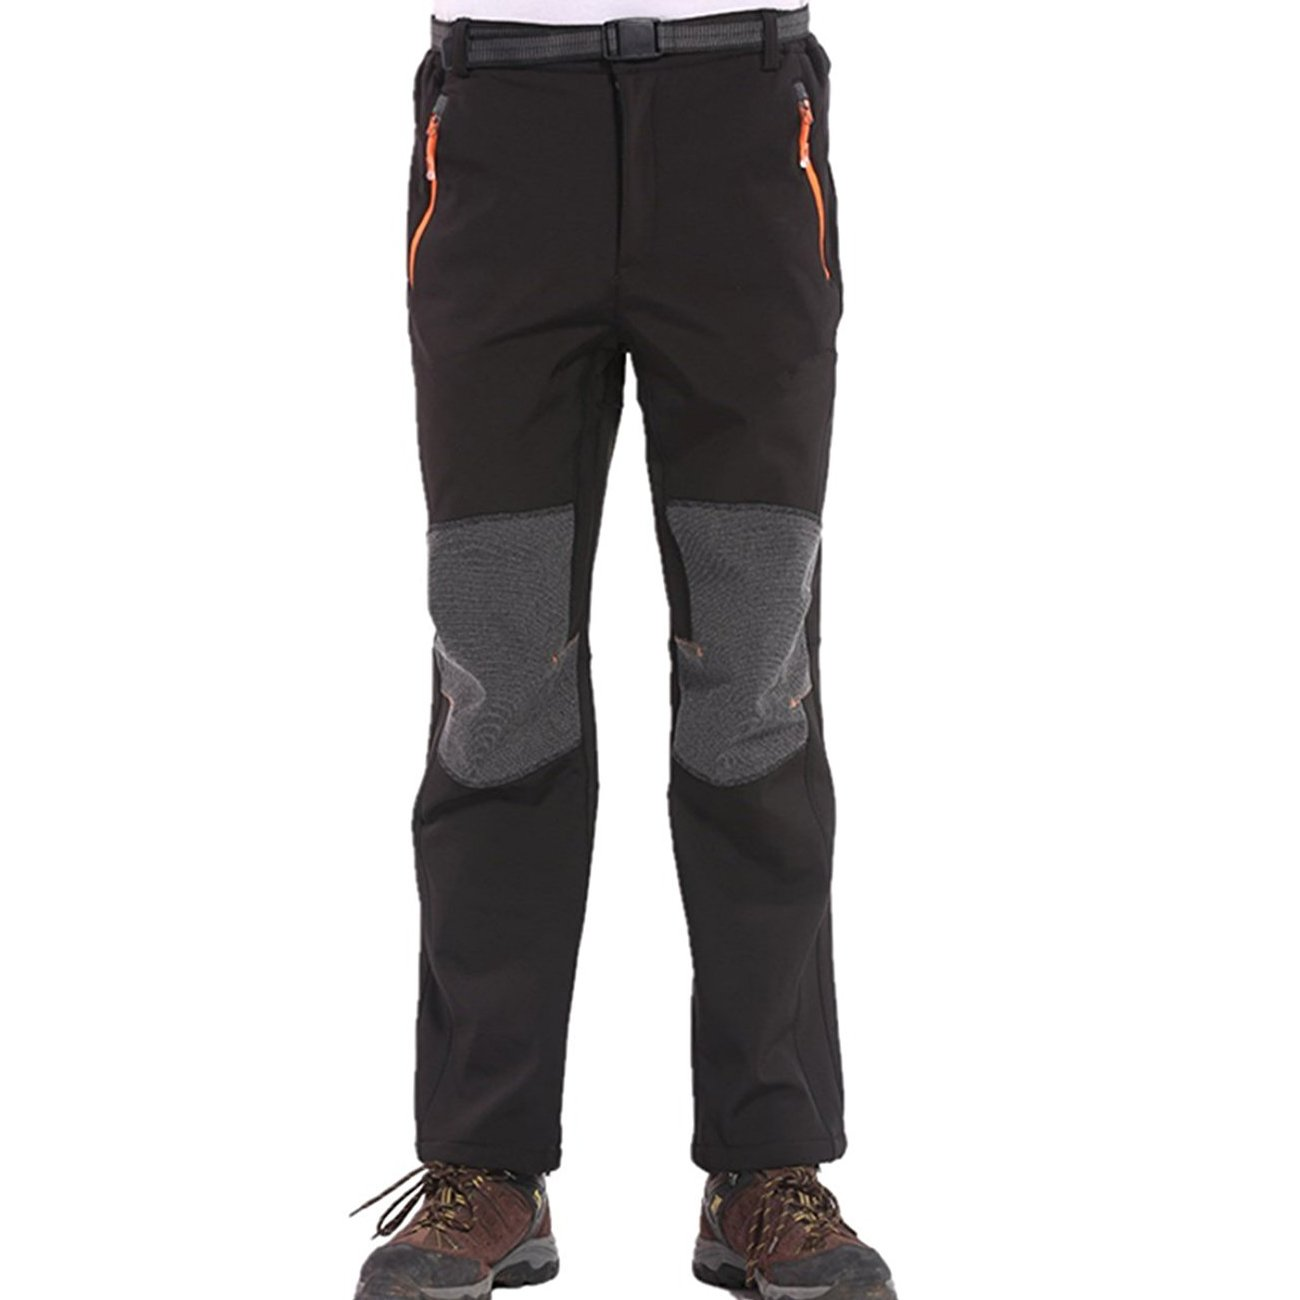 SiDiOU Group Outdoor Waterproof Windproof Climbing Hiking Trousers Trekking Pants